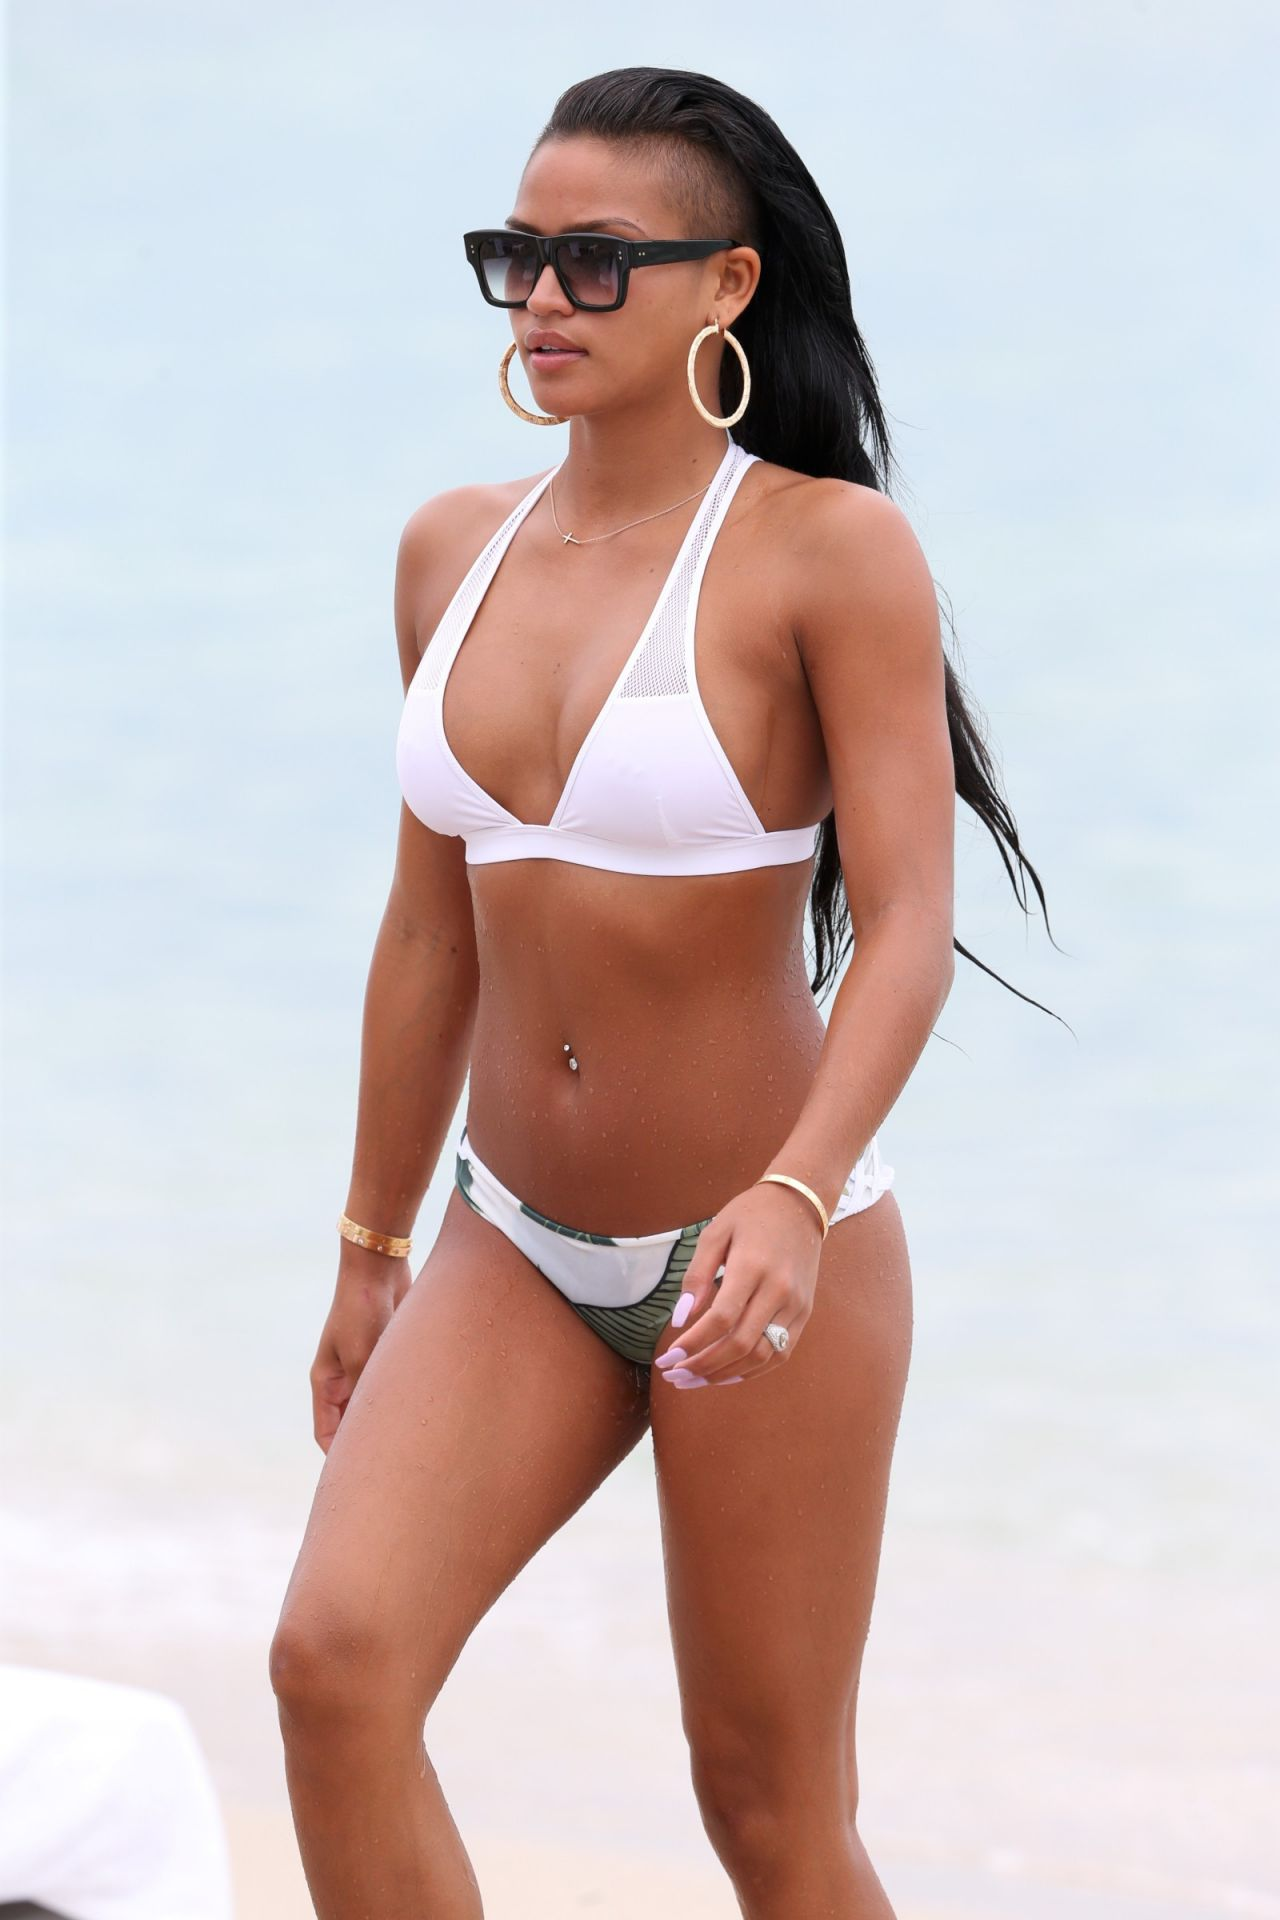 cassie ventura and p diddycassie ventura 2017, cassie ventura 2016, cassie ventura insta, cassie ventura twitter, cassie ventura site, cassie ventura albums, cassie ventura live, cassie ventura instagram, cassie ventura and diddy, cassie ventura step up 2, cassie ventura father, cassie ventura news, cassie ventura gif tumblr, cassie ventura, cassie ventura tumblr, cassie ventura 2015, cassie ventura parents, cassie ventura and p diddy, cassie ventura wiki, cassie ventura me u